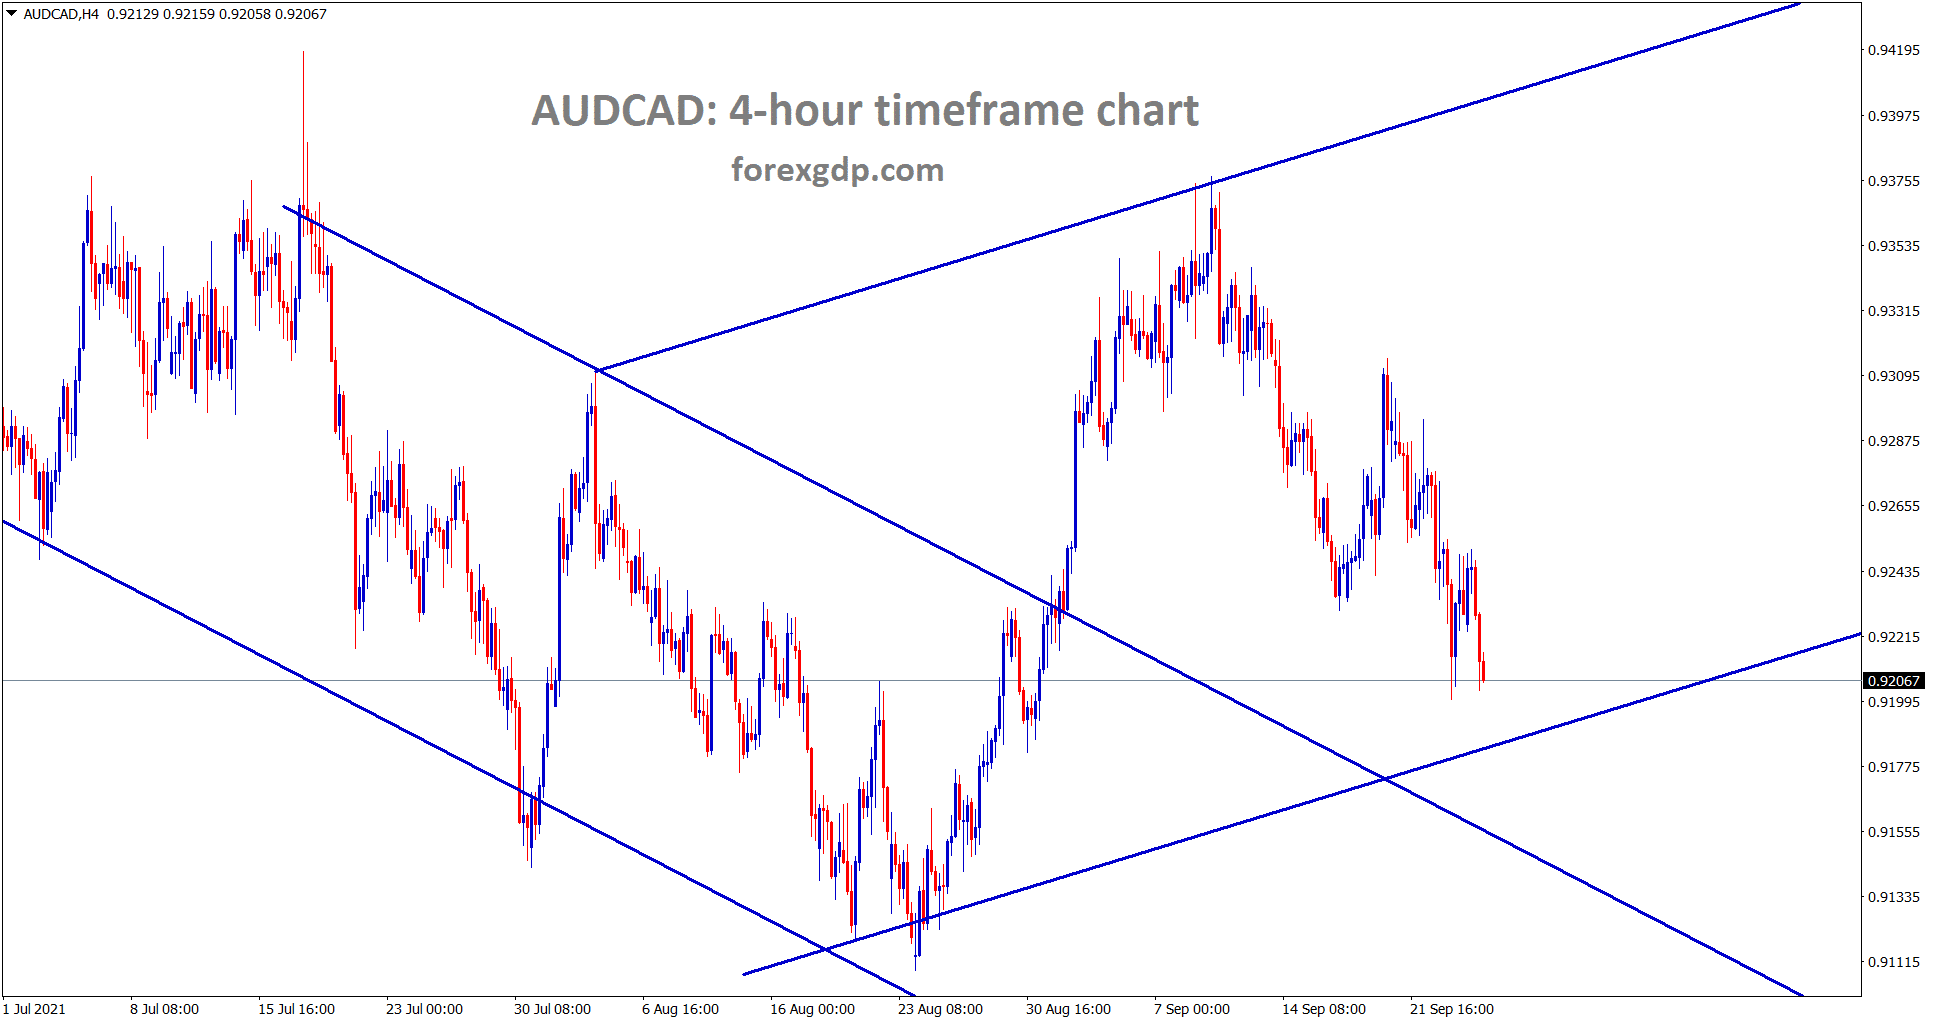 AUDCAD is moving between the channel range